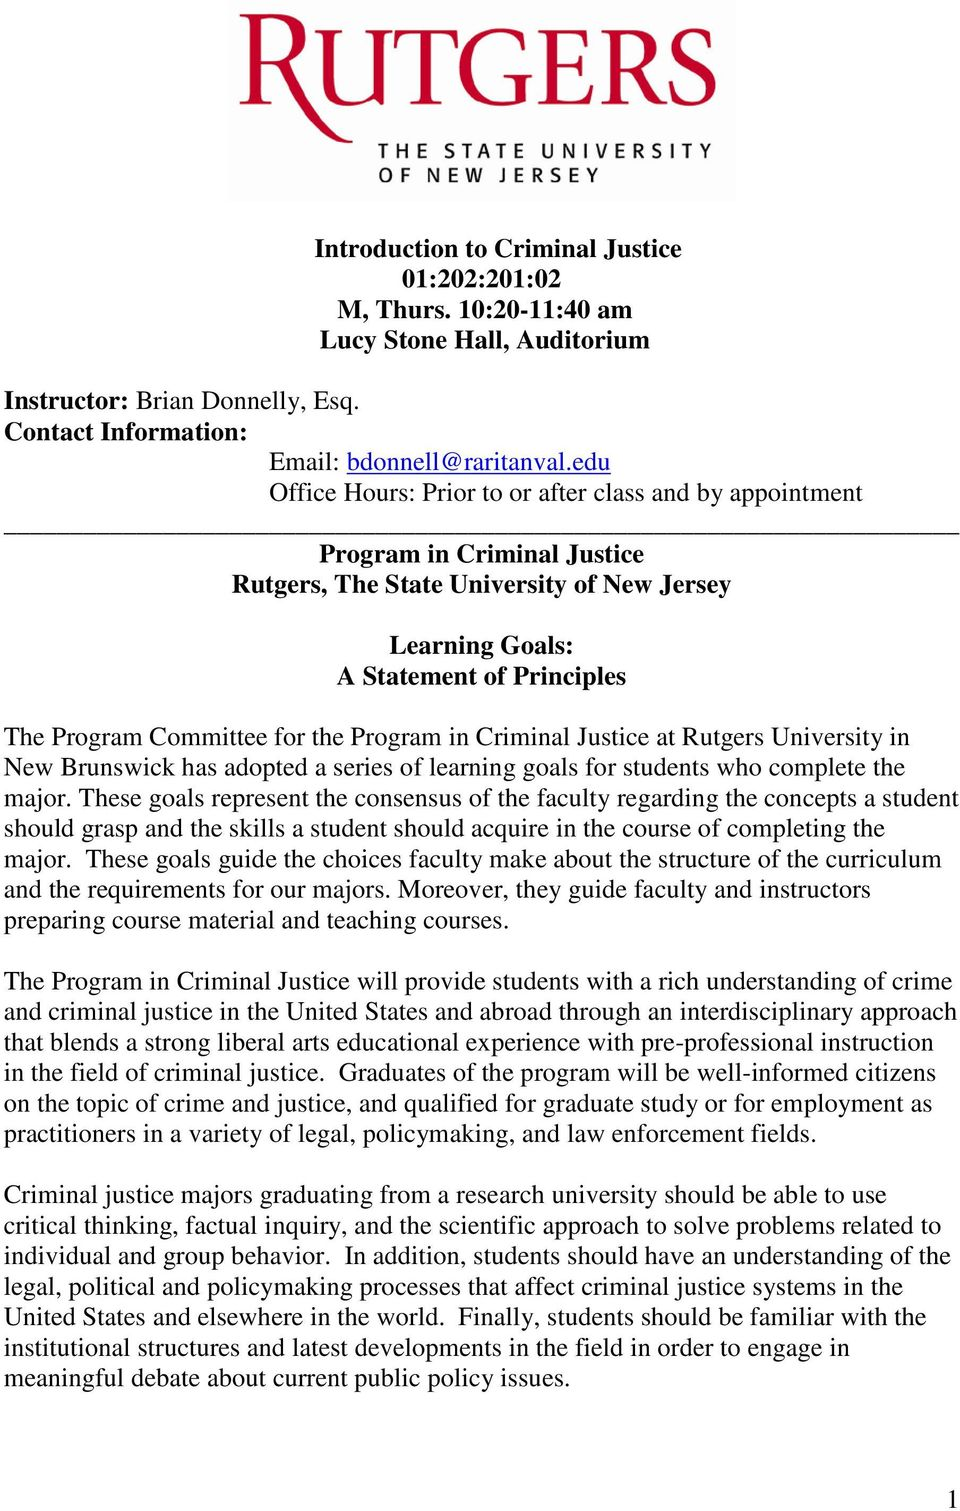 for the Program in Criminal Justice at Rutgers University in New Brunswick has adopted a series of learning goals for students who complete the major.